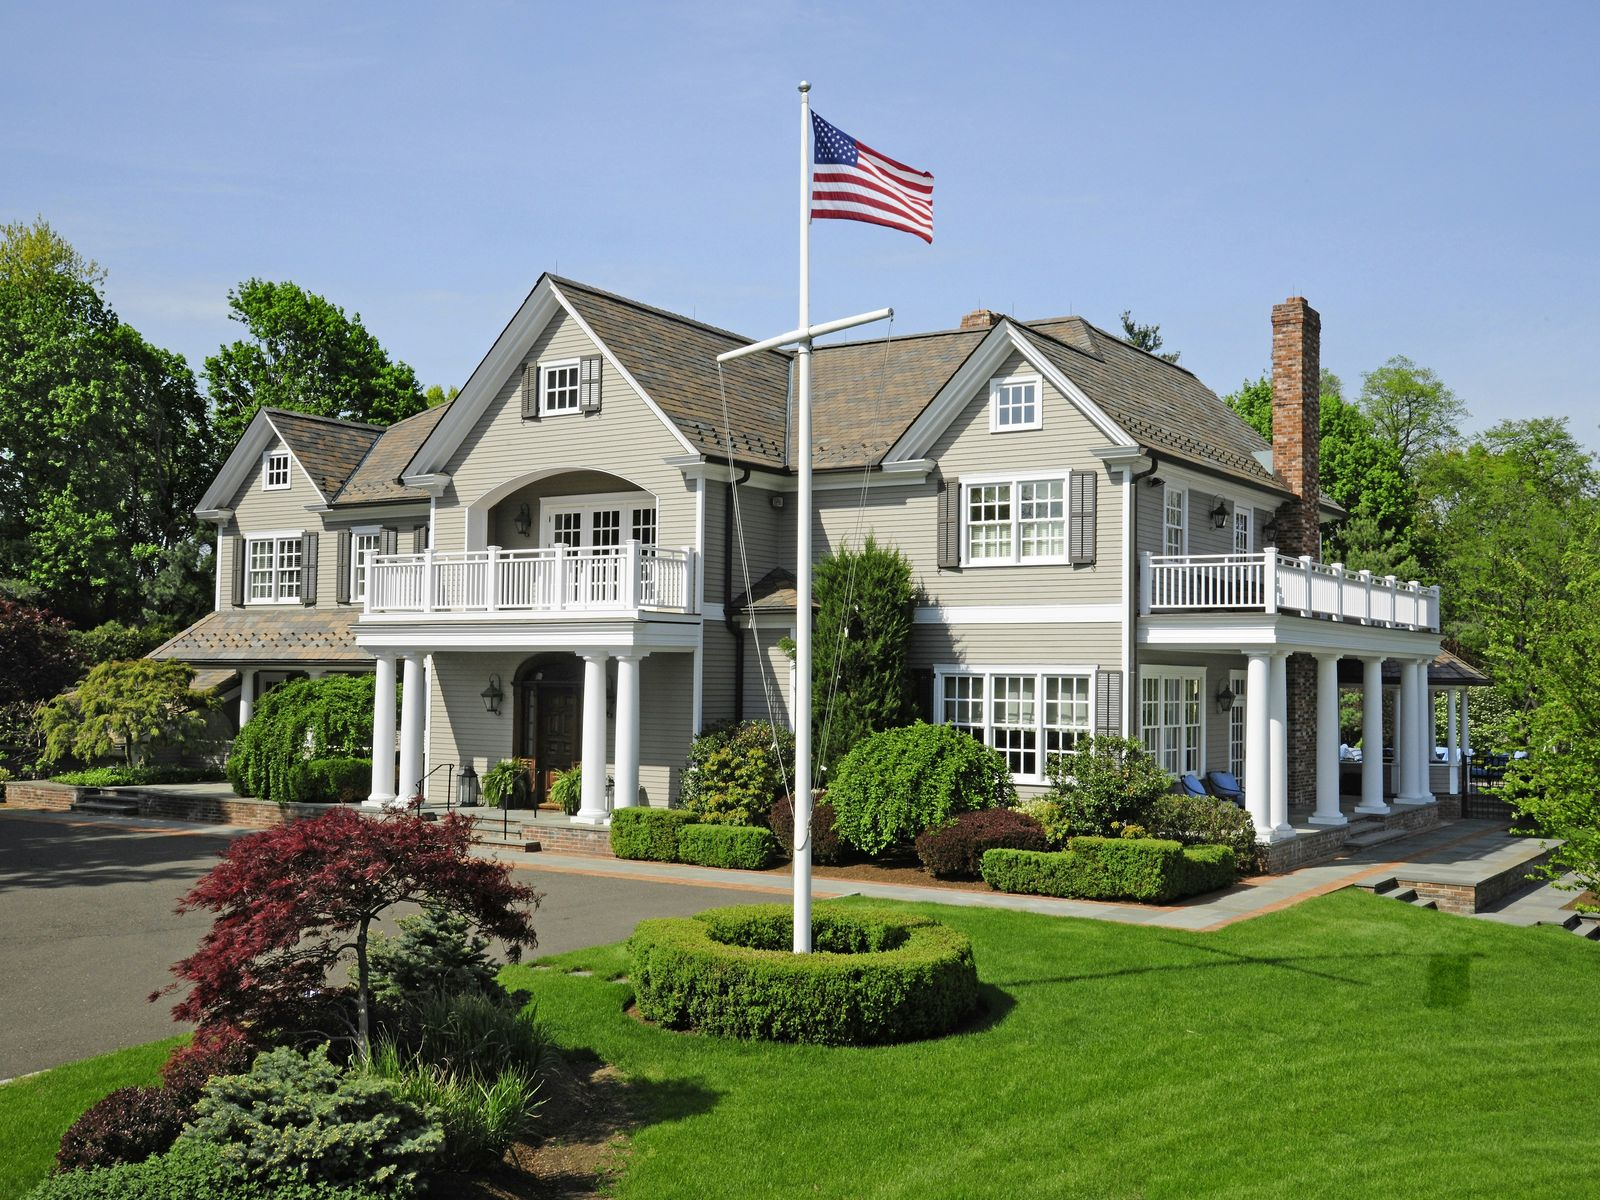 Resort style living by the sea greenwich ct single family for Luxury homes for sale in greenwich ct